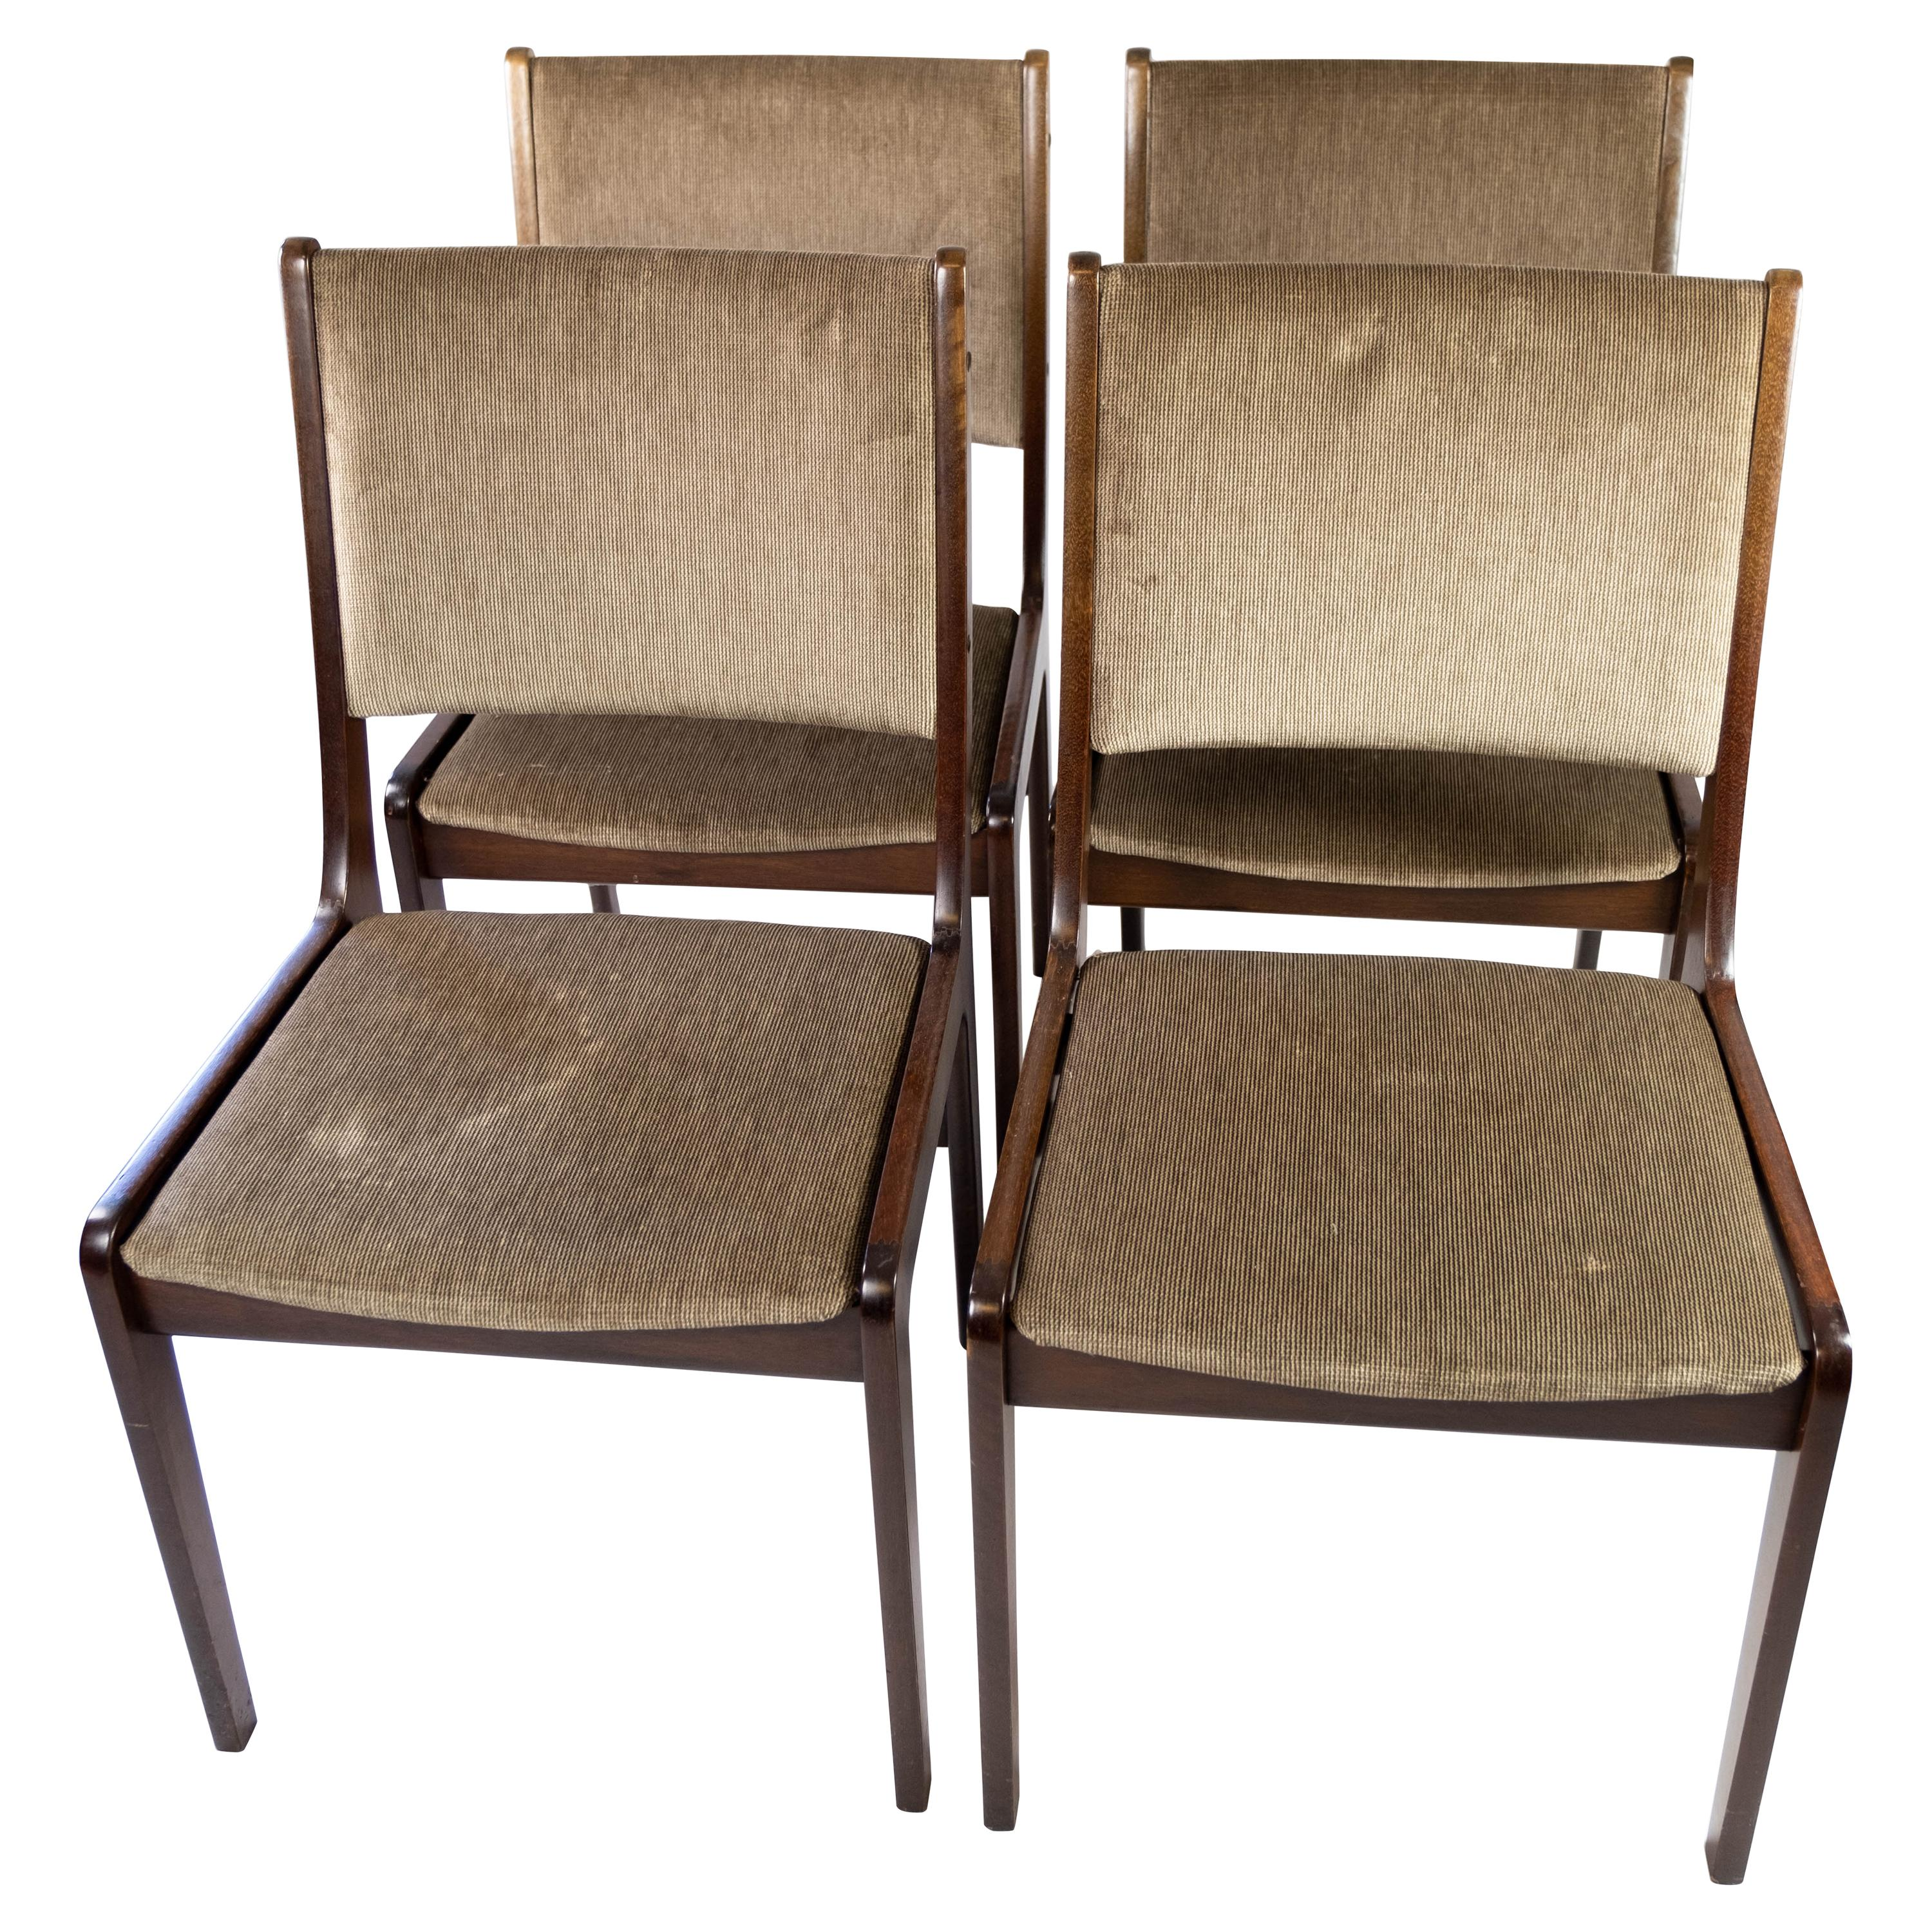 Set of Four Dining Room Chairs in Dark Wood of Danish Design by Faarstrup, 1960s